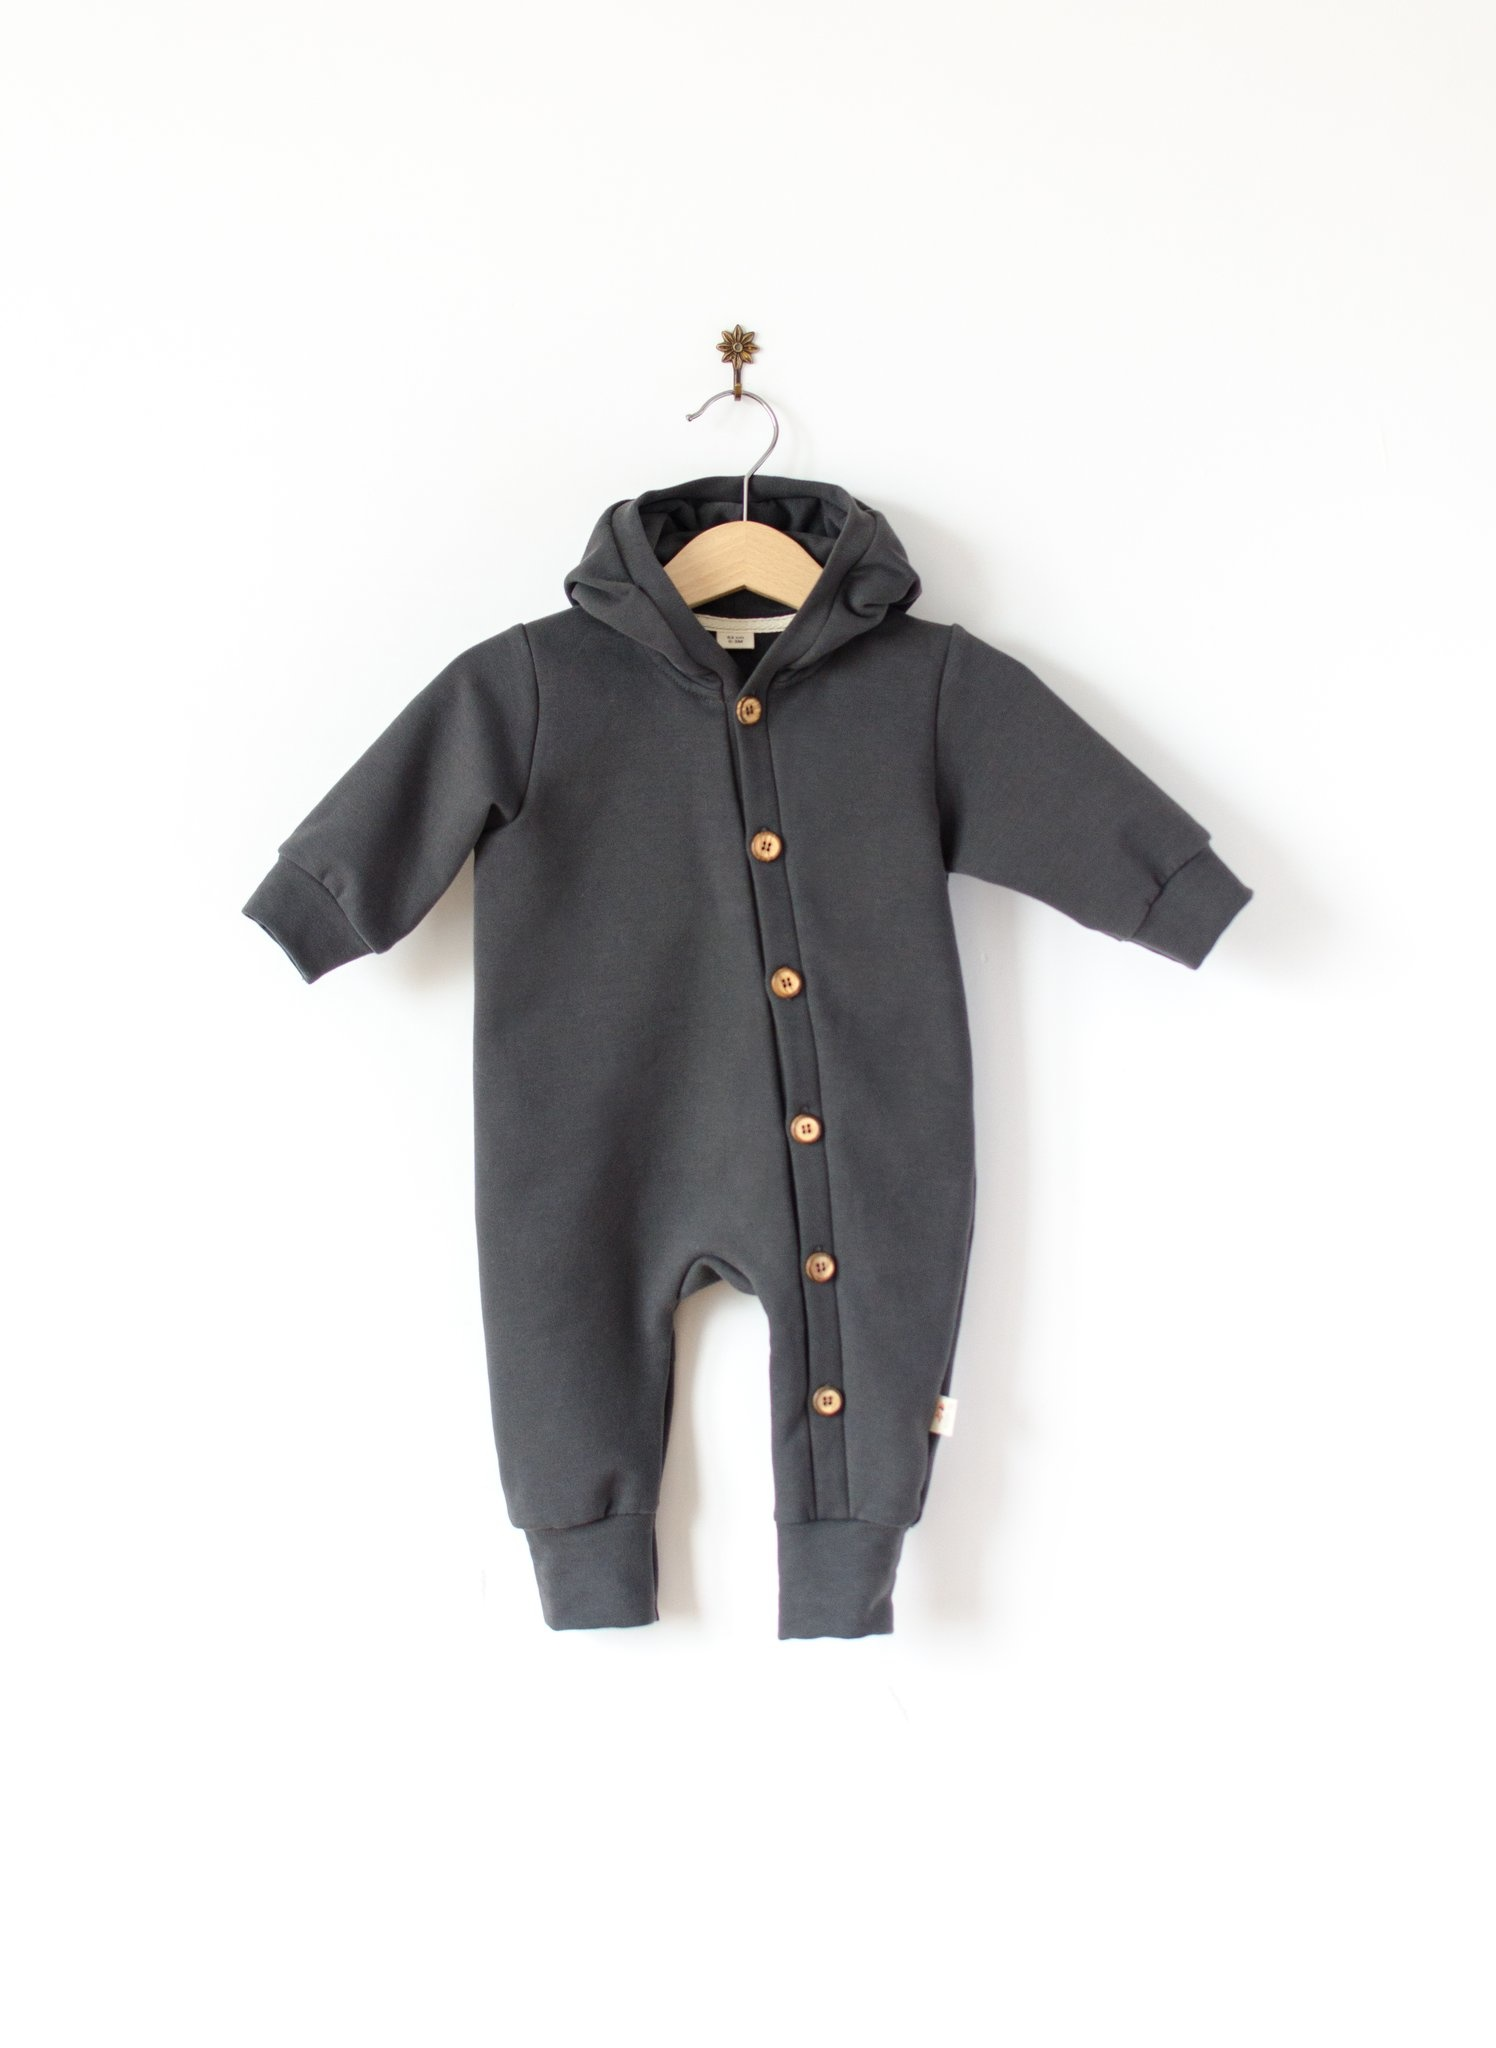 Hooded jumpsuit nearly black with wooden buttons